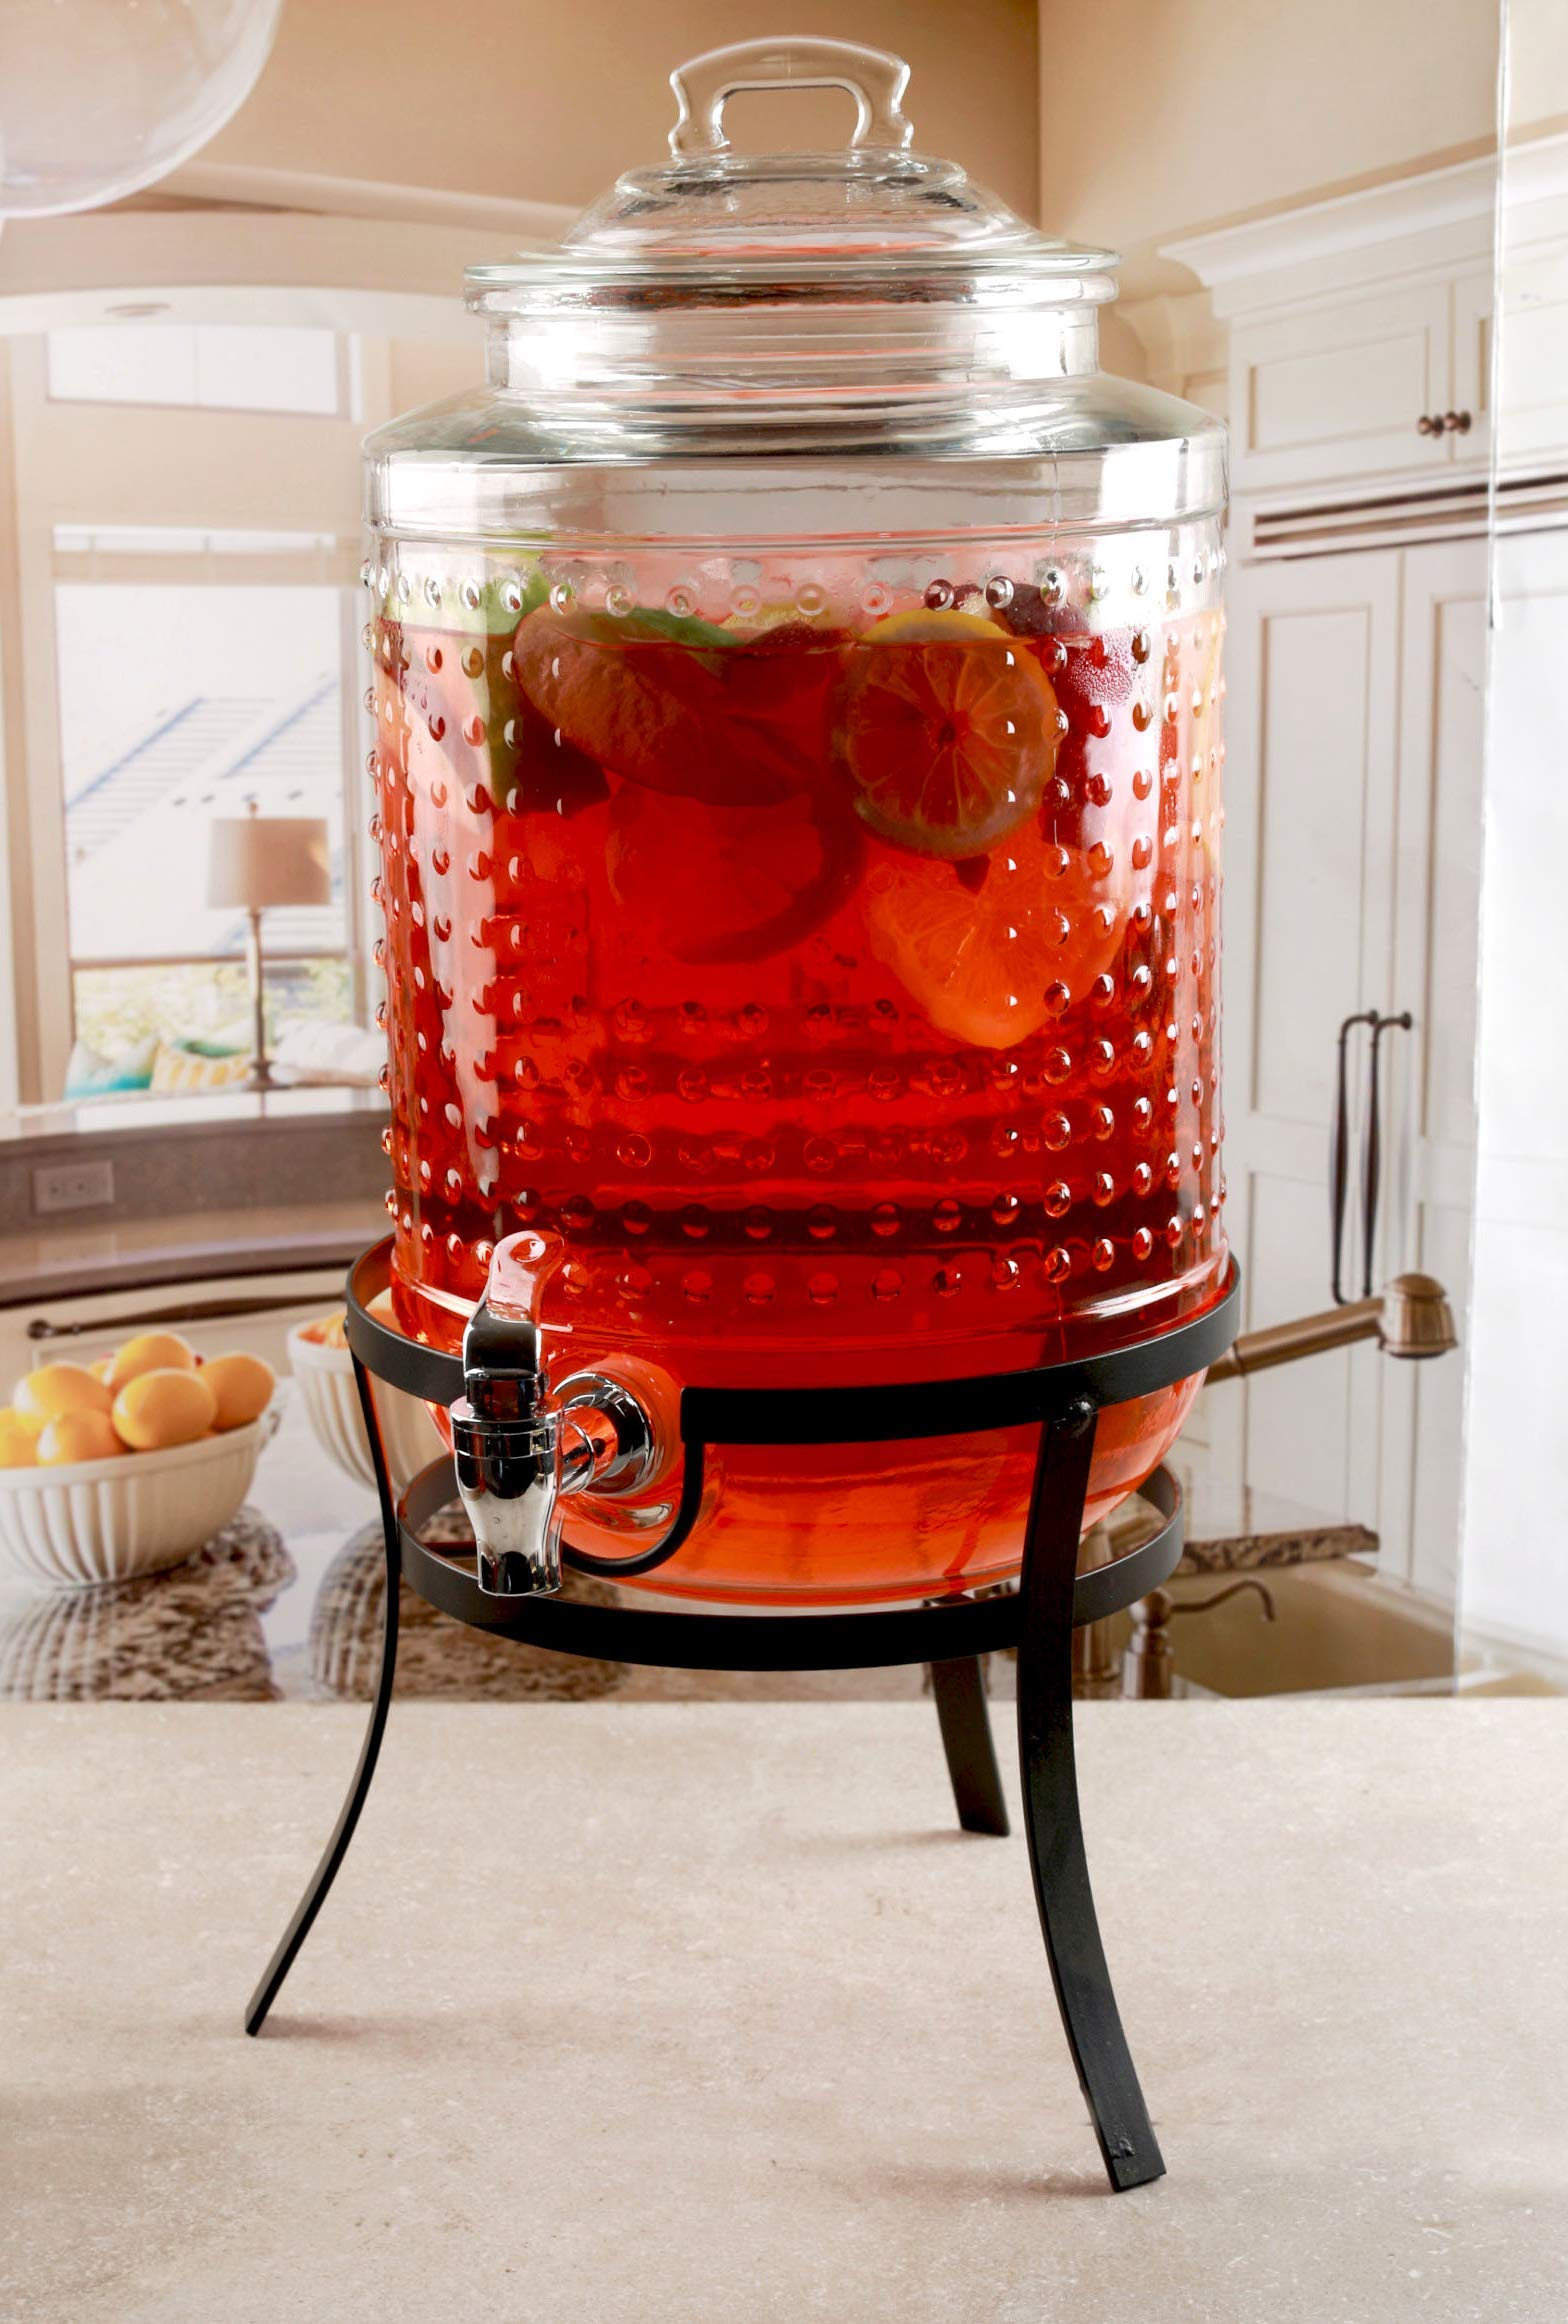 Circleware 69184 Vintage Dots Beverage Dispenser with Metal Stand, Glass Lid & Handle, Fun Party Home Entertainment Glassware Water Pitcher for Juice Drinks, Cold Beer, 1.9 Gallon Hobnail by Circleware (Image #2)